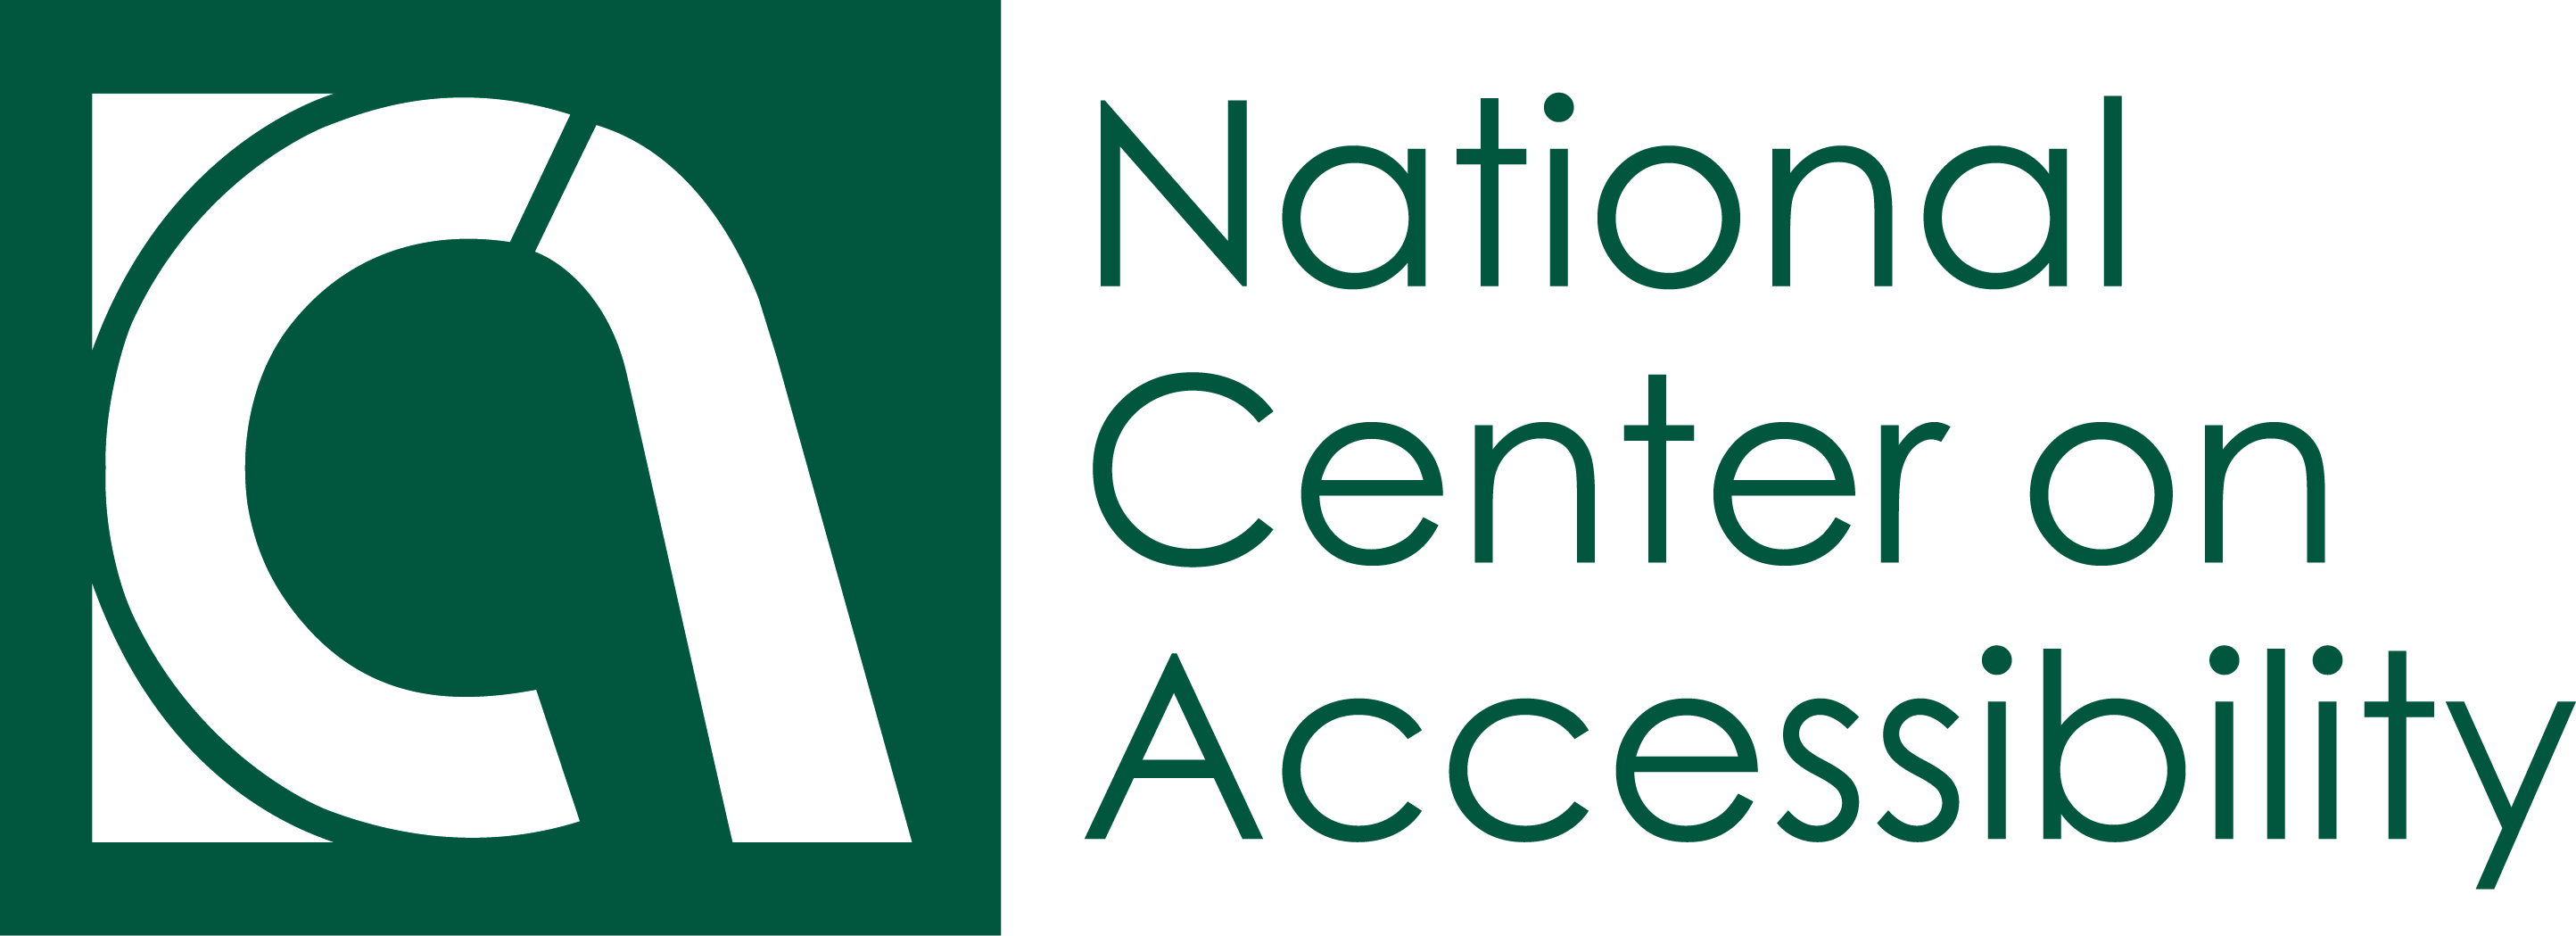 The National Center on Accessibility